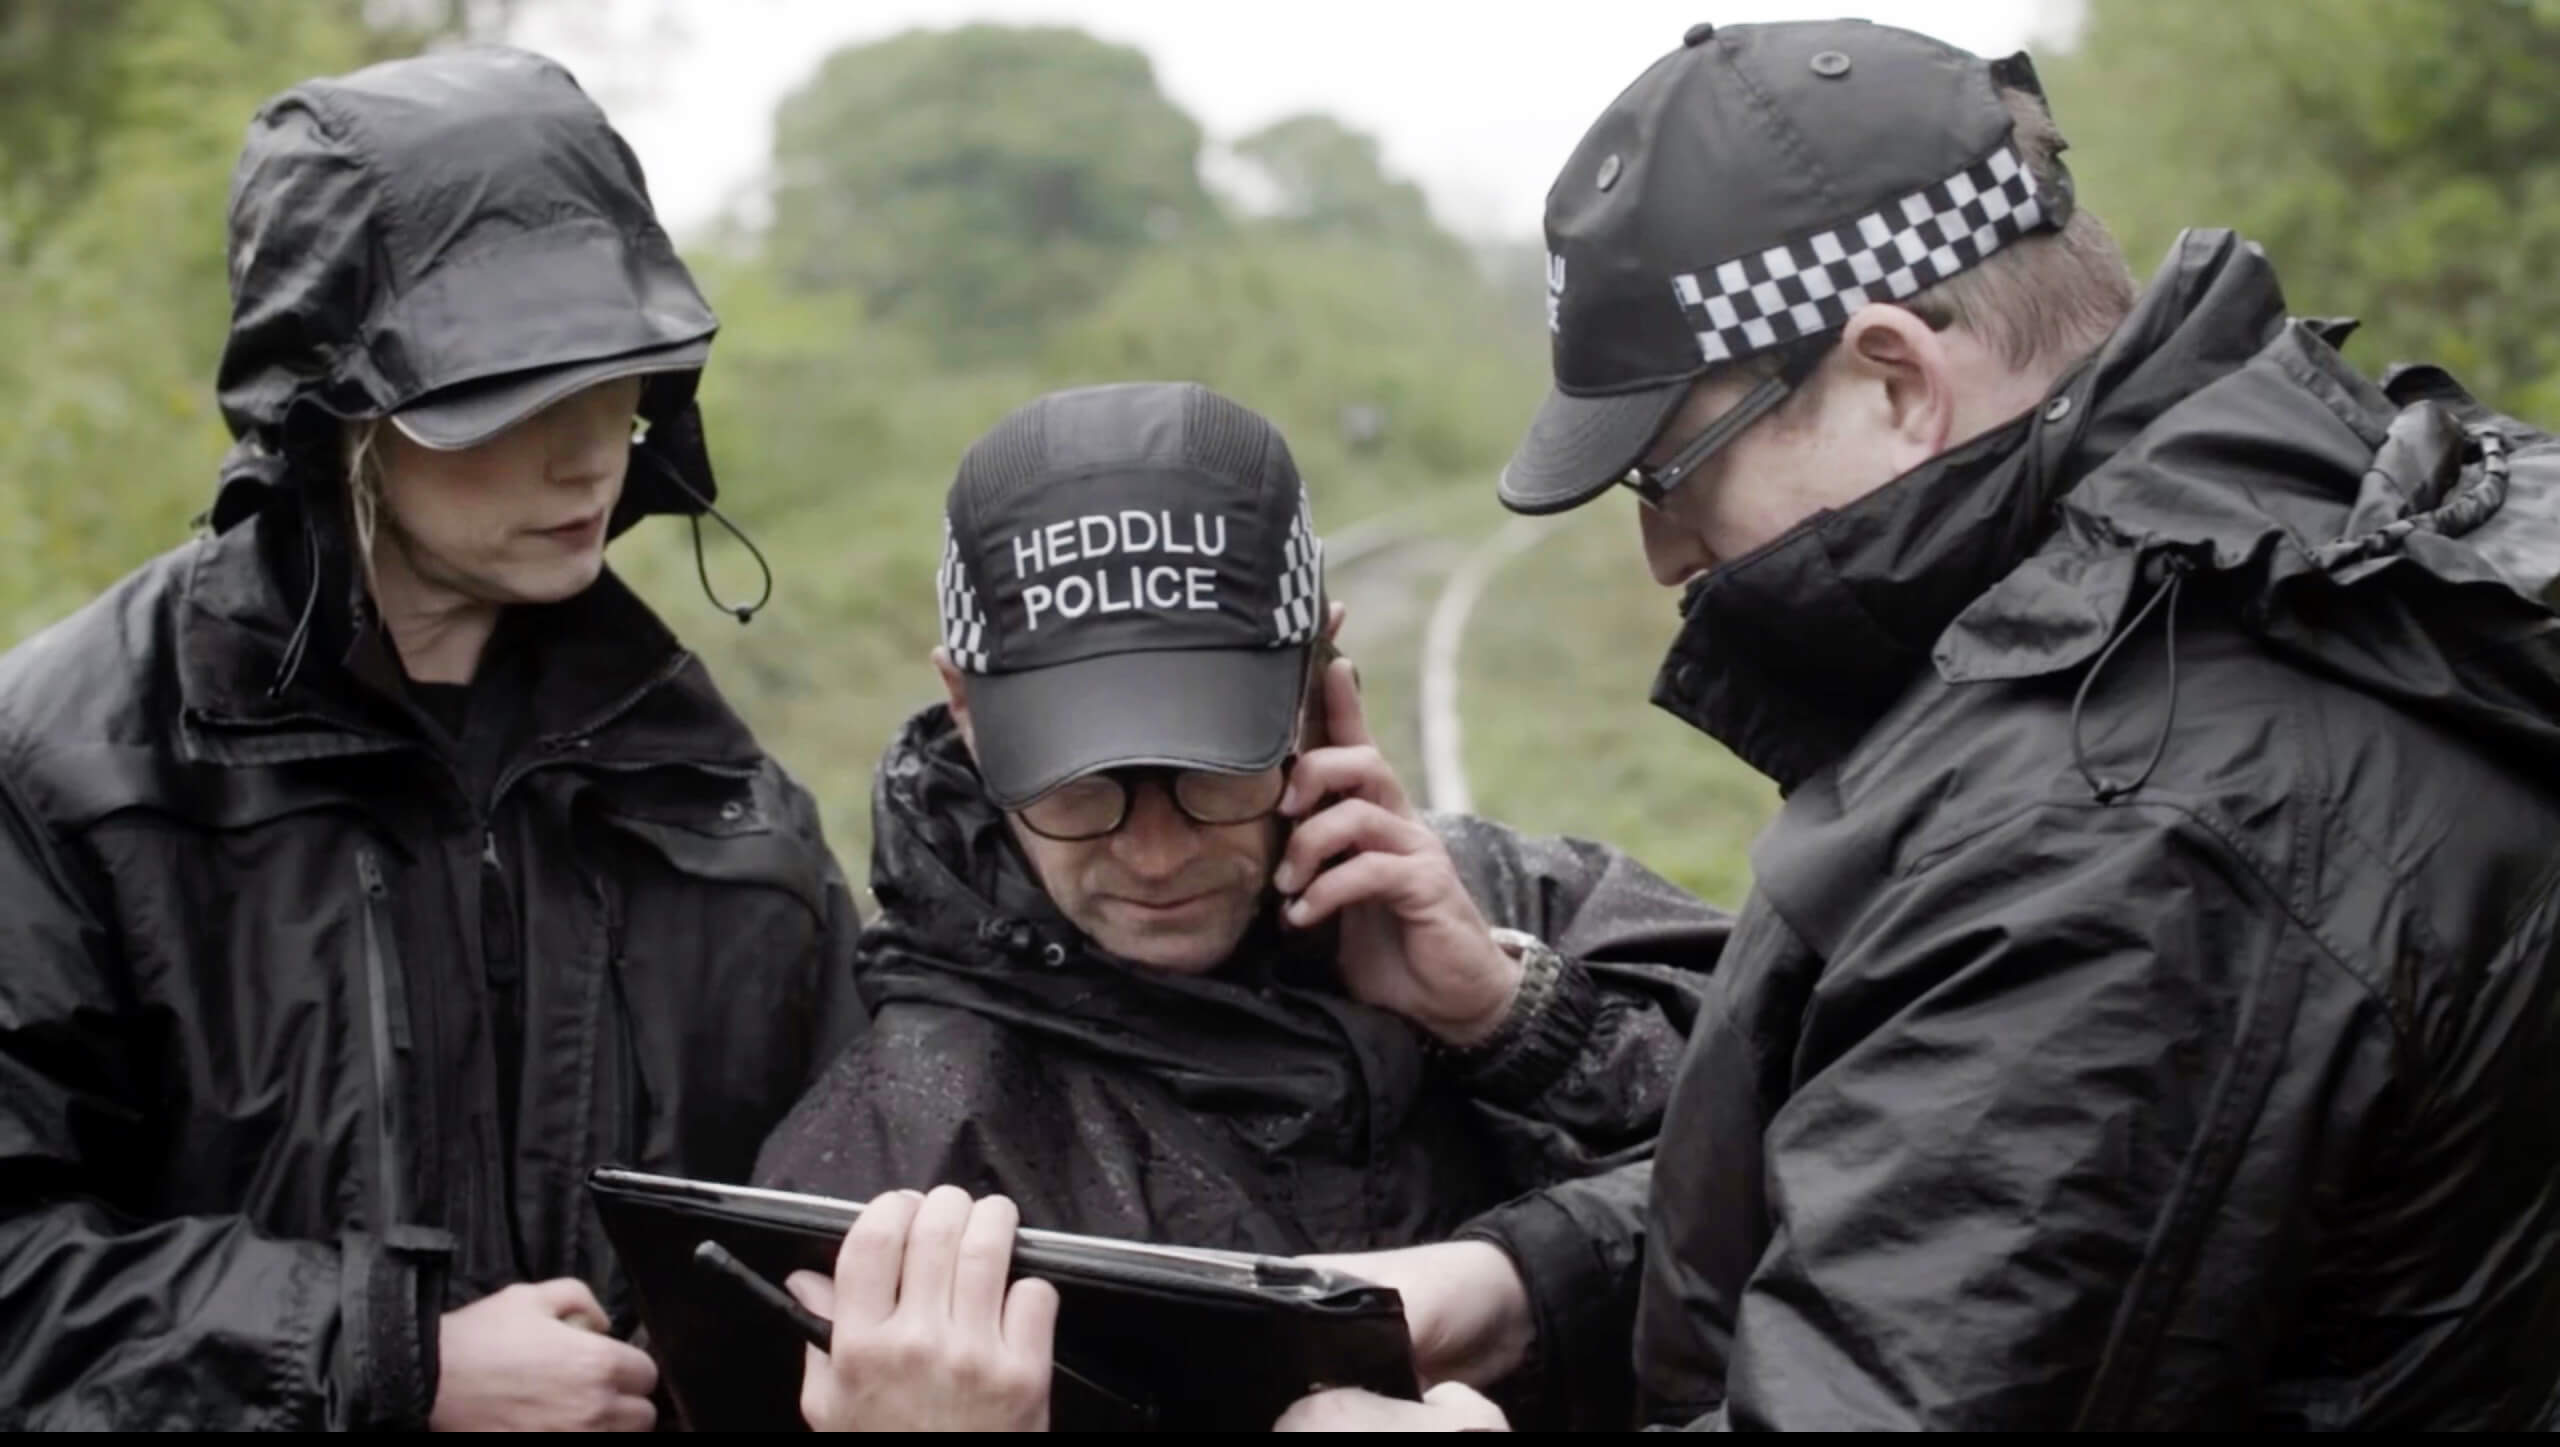 welsh police looking at map